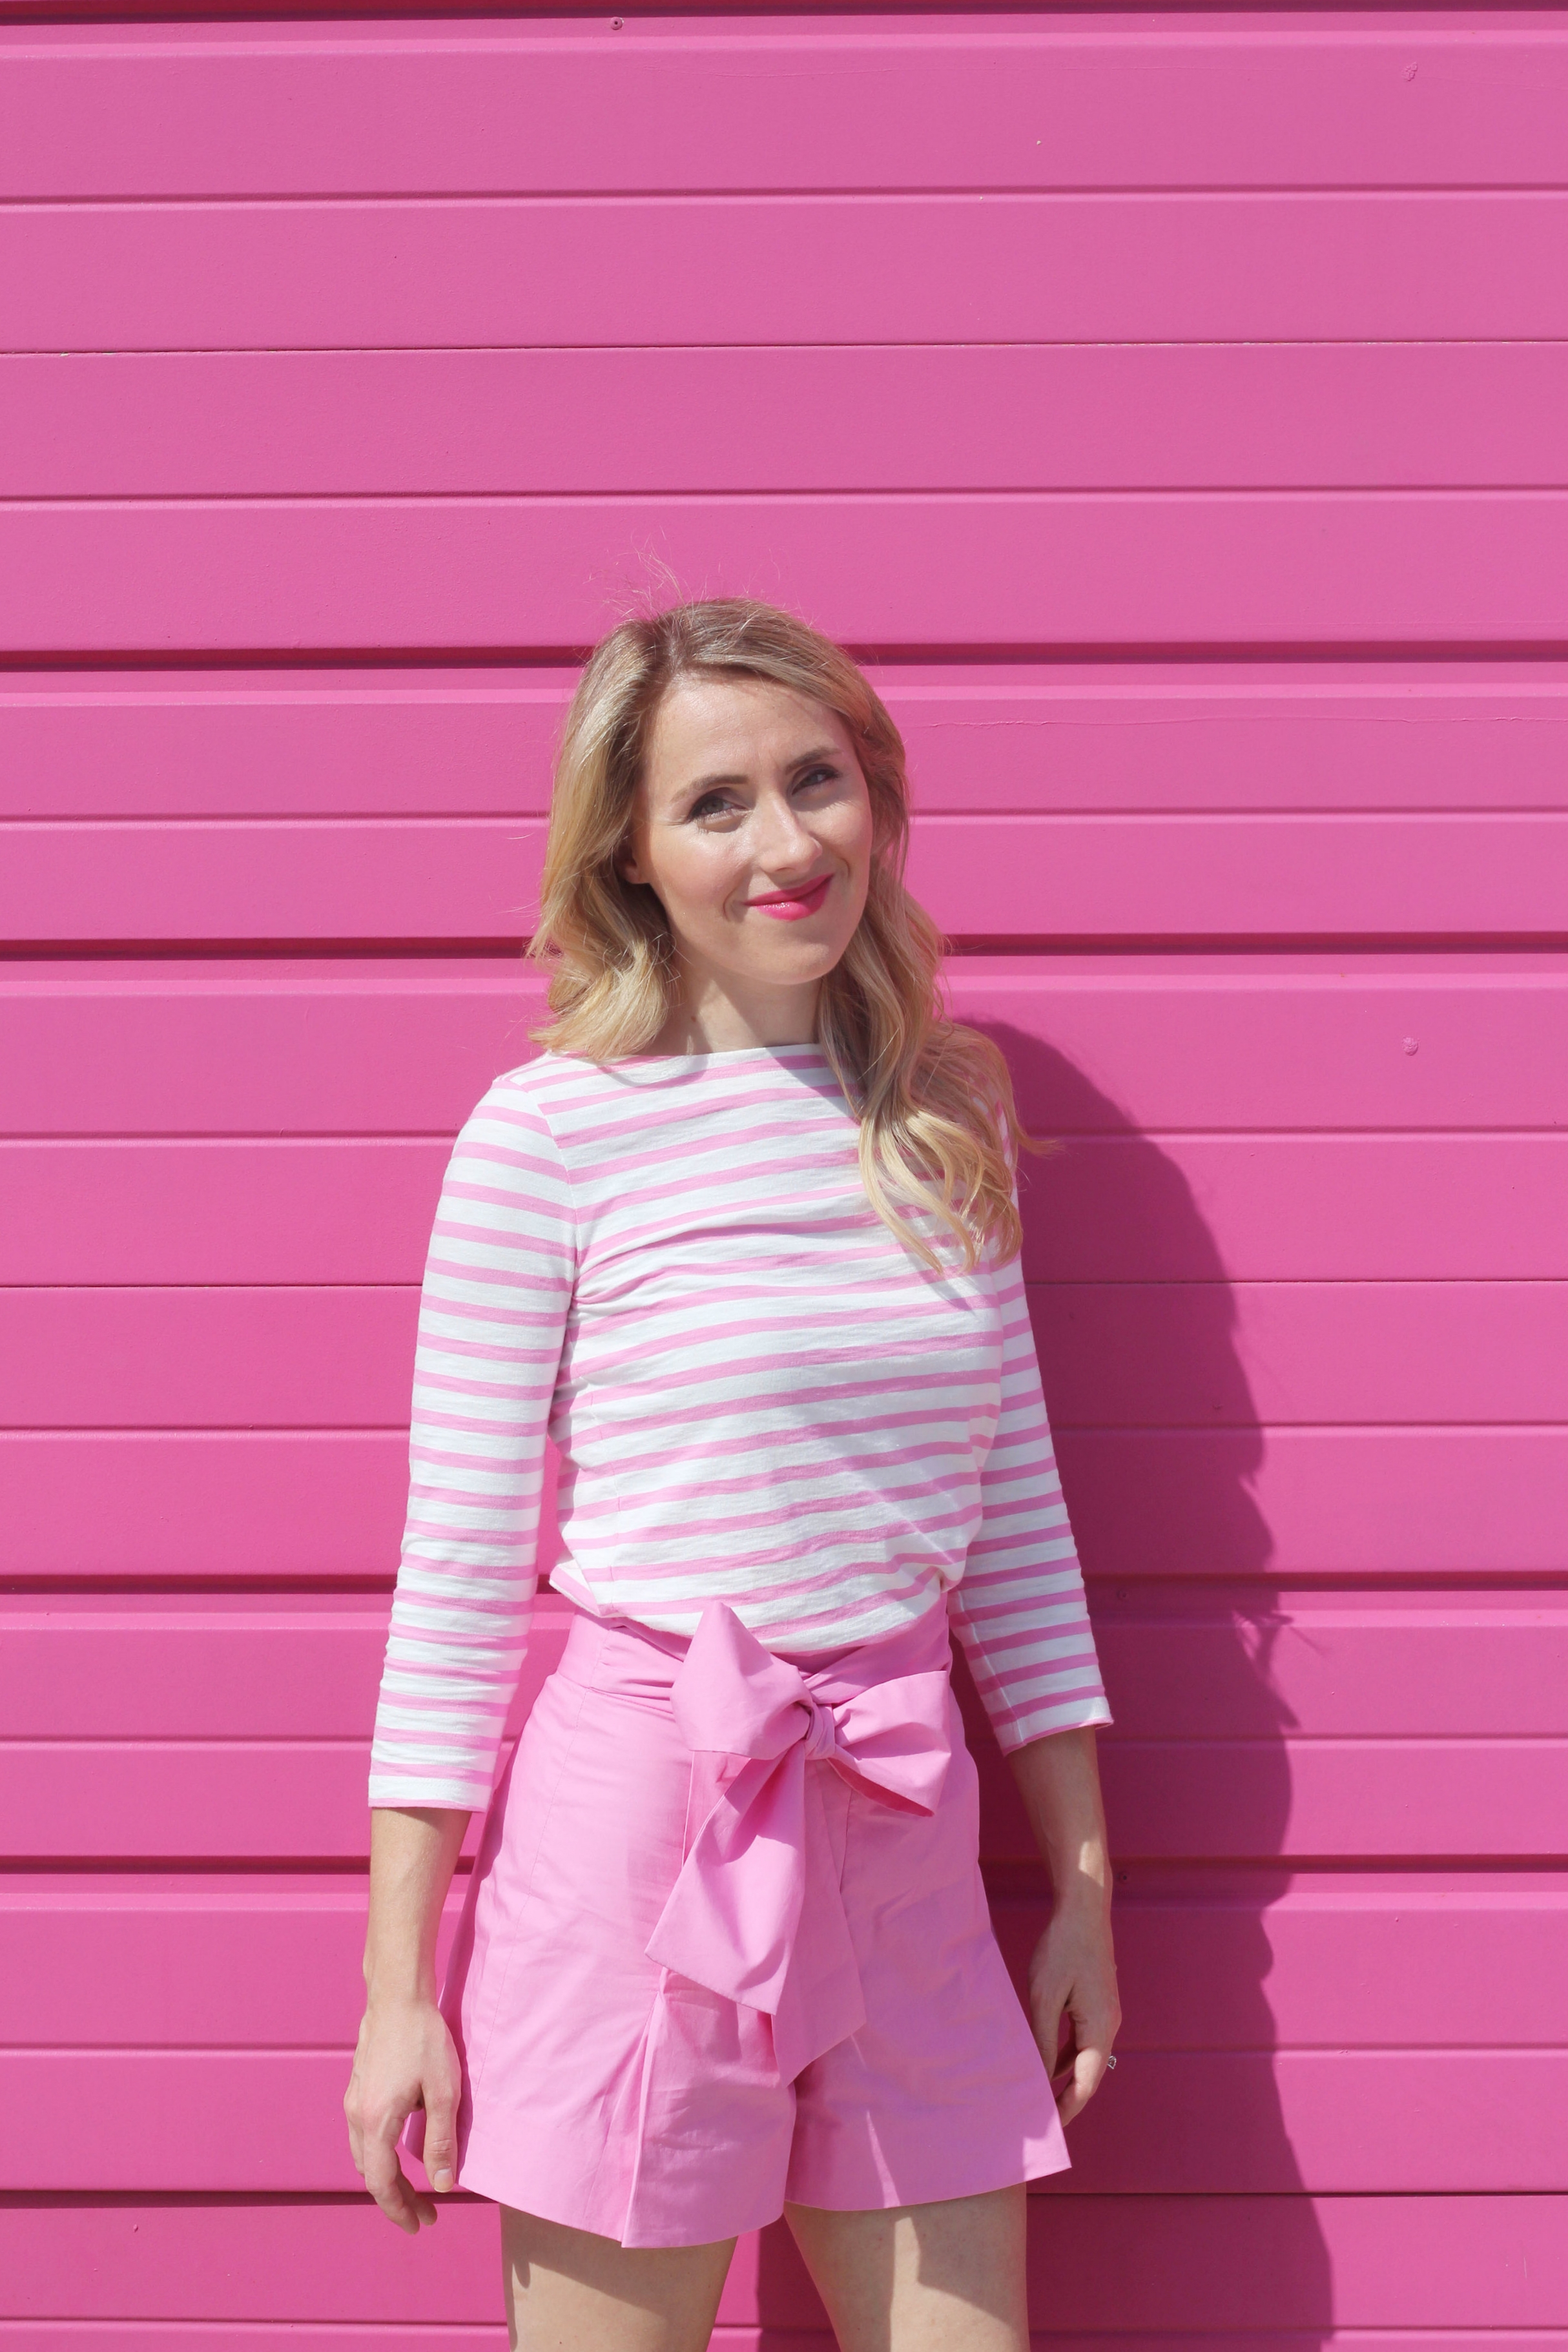 Pink Outift, J.Crew Stripes and Bow